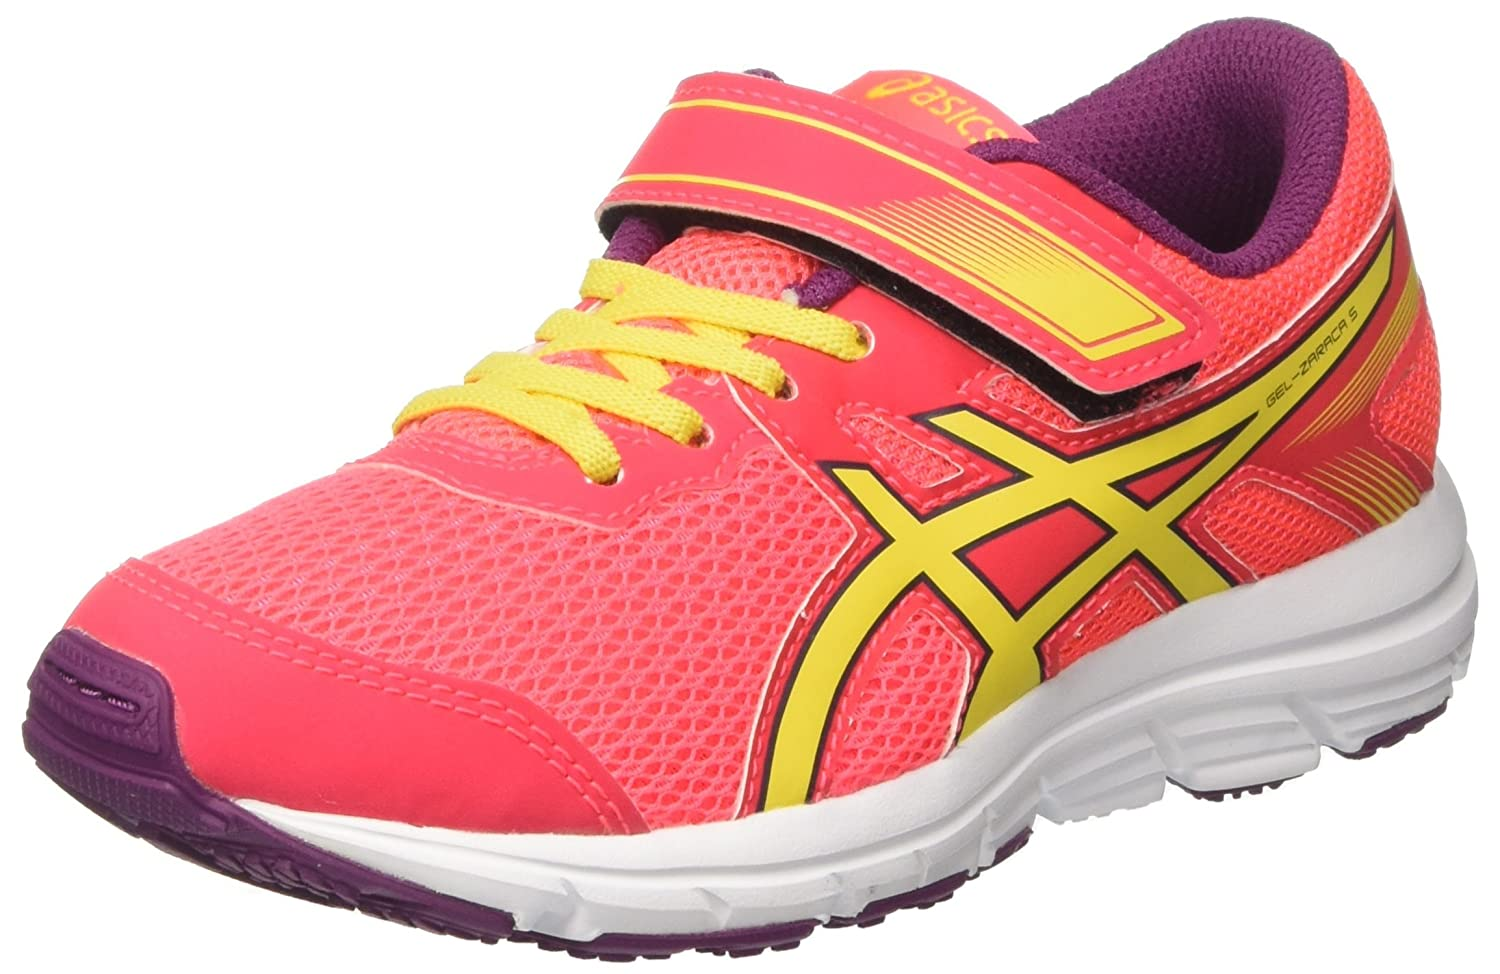 ASICS Unisex Kids' Gel-Zaraca 5 Ps Gymnastics Shoes: Amazon.co.uk ...